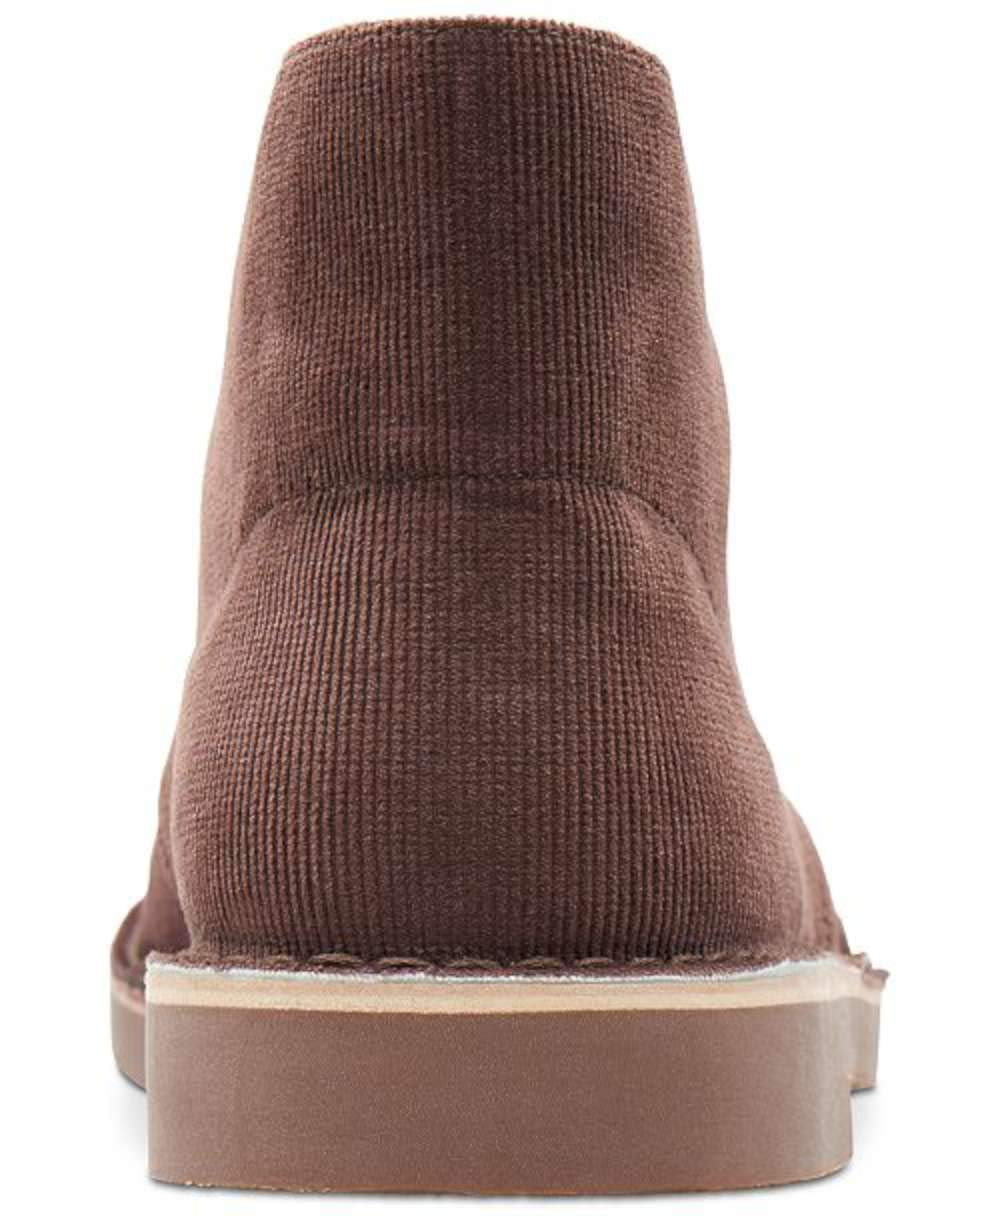 CLARKS Mens Bushacre 2 Fabric Closed Toe Ankle Fashion, Brown Cord, Size 9.0 4